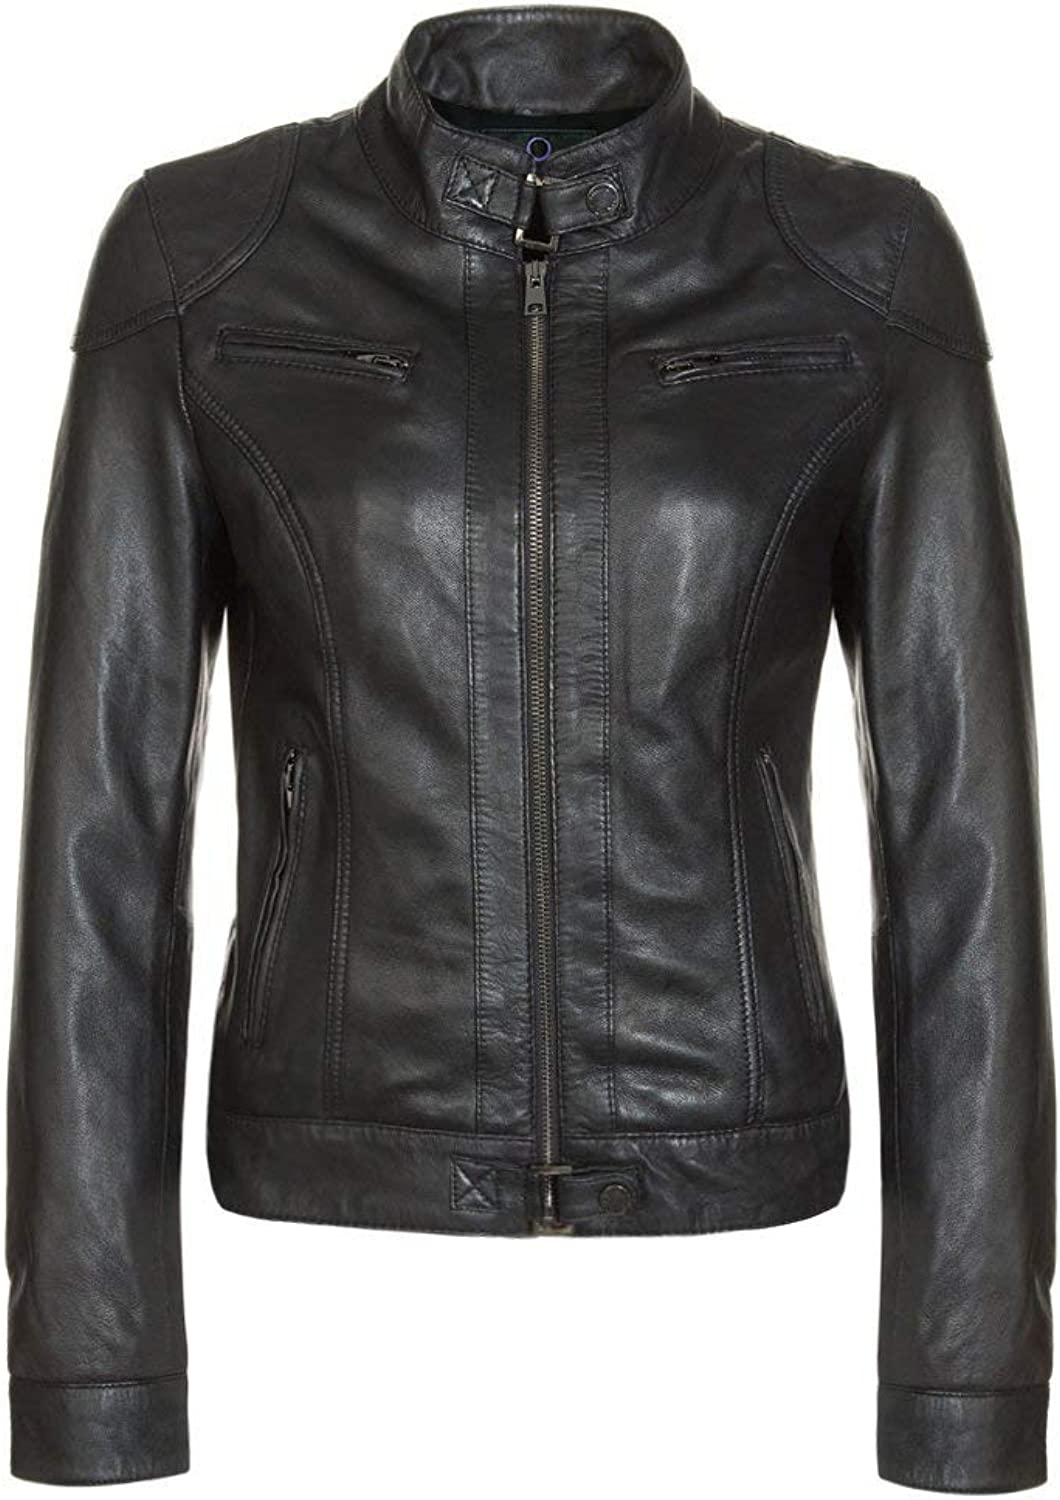 Chase Squad Strappy Faux Leather Jacket Women  Biker Faux Leather Jacket with Strapped Collar in Black